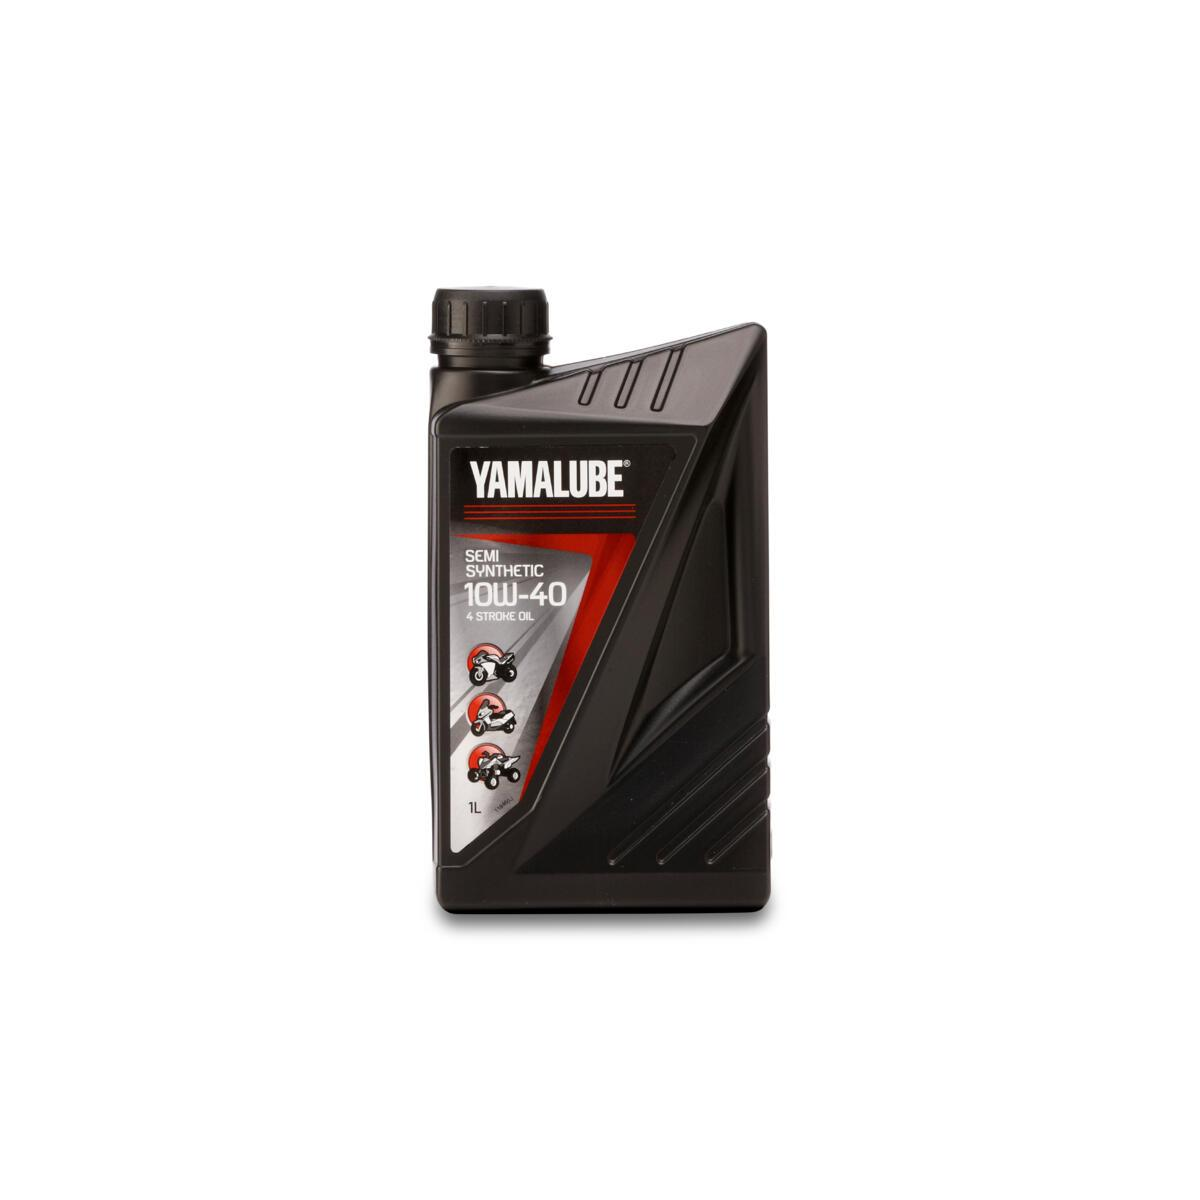 Yamalube - Semi Synthetic 4-stroke Oil 10W-40 - 4 Litres